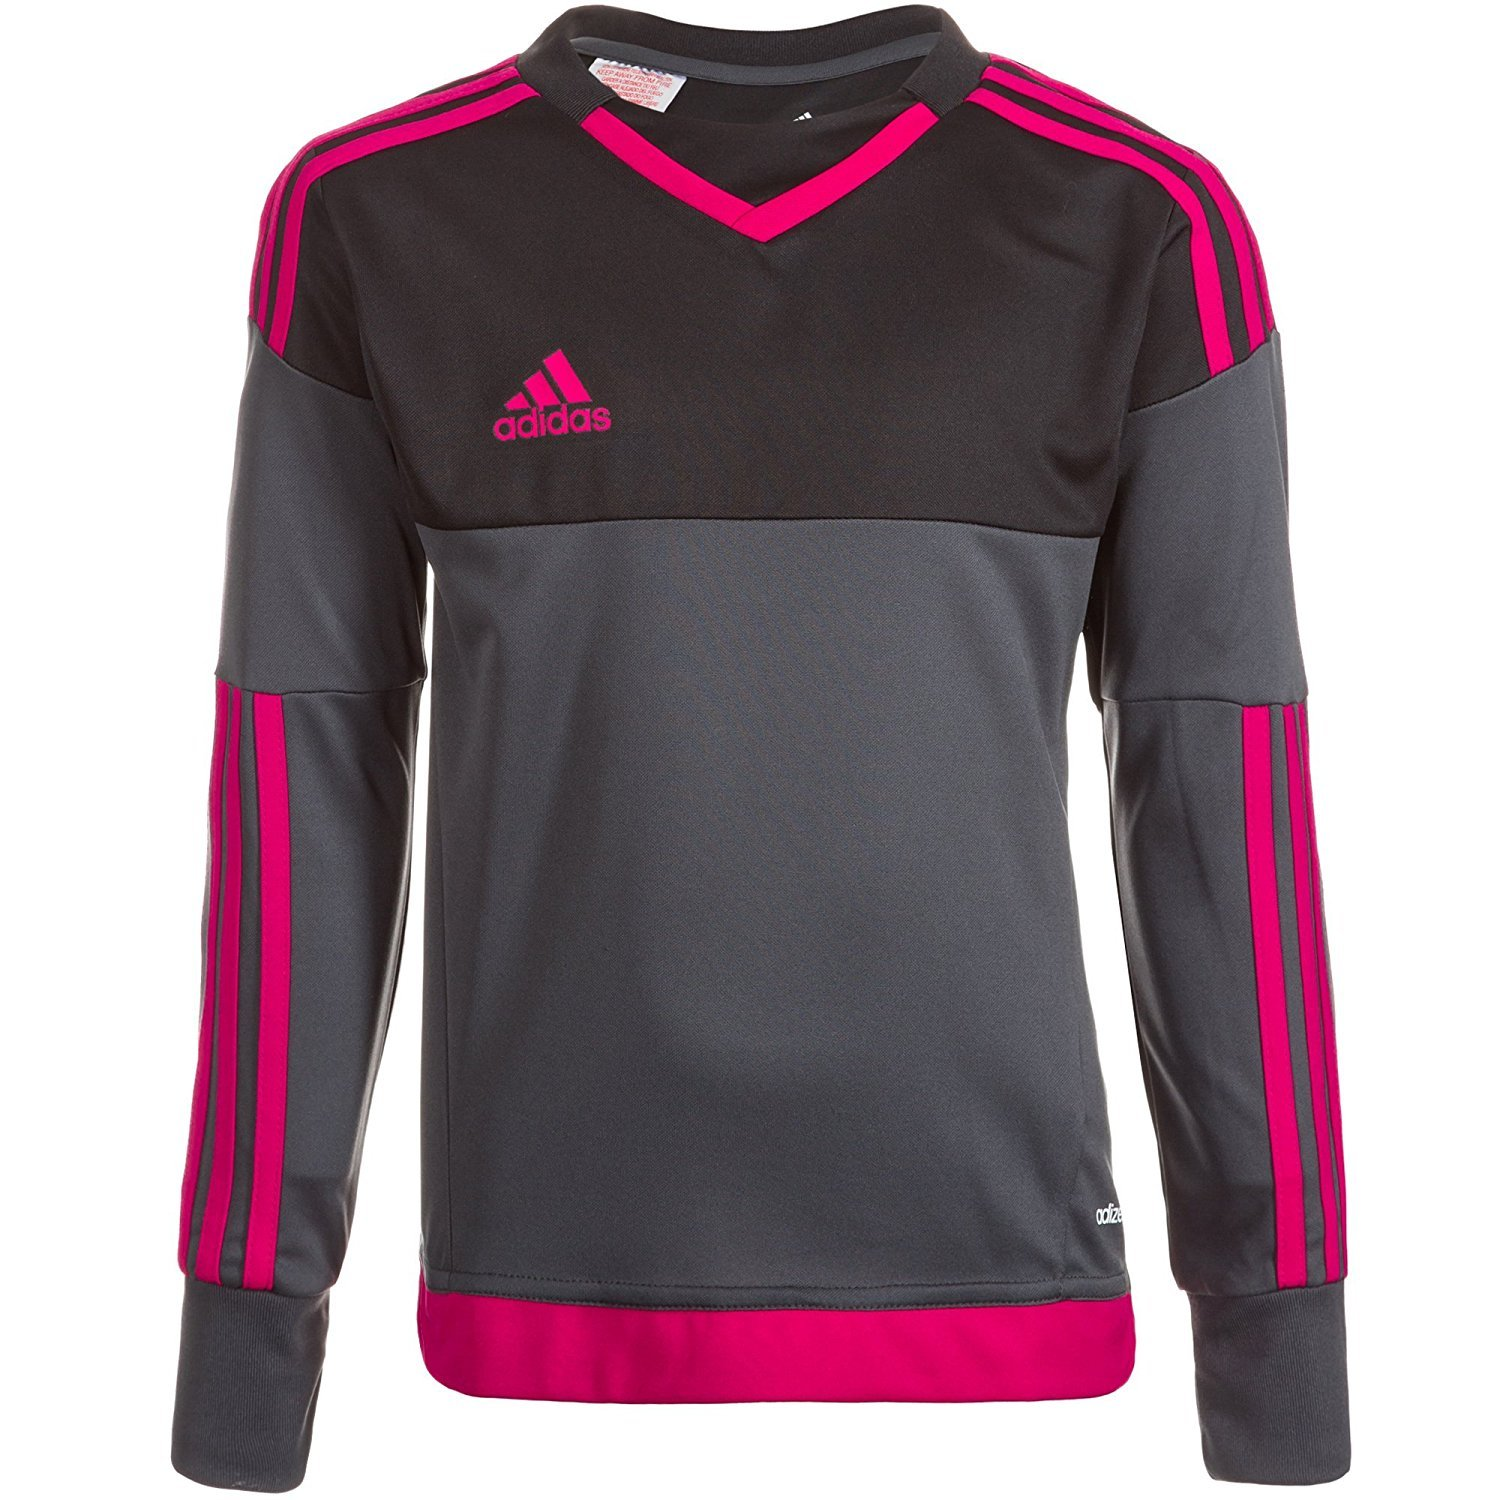 Adidas Gk Youth TOP15 Jersey (Y-Medium)